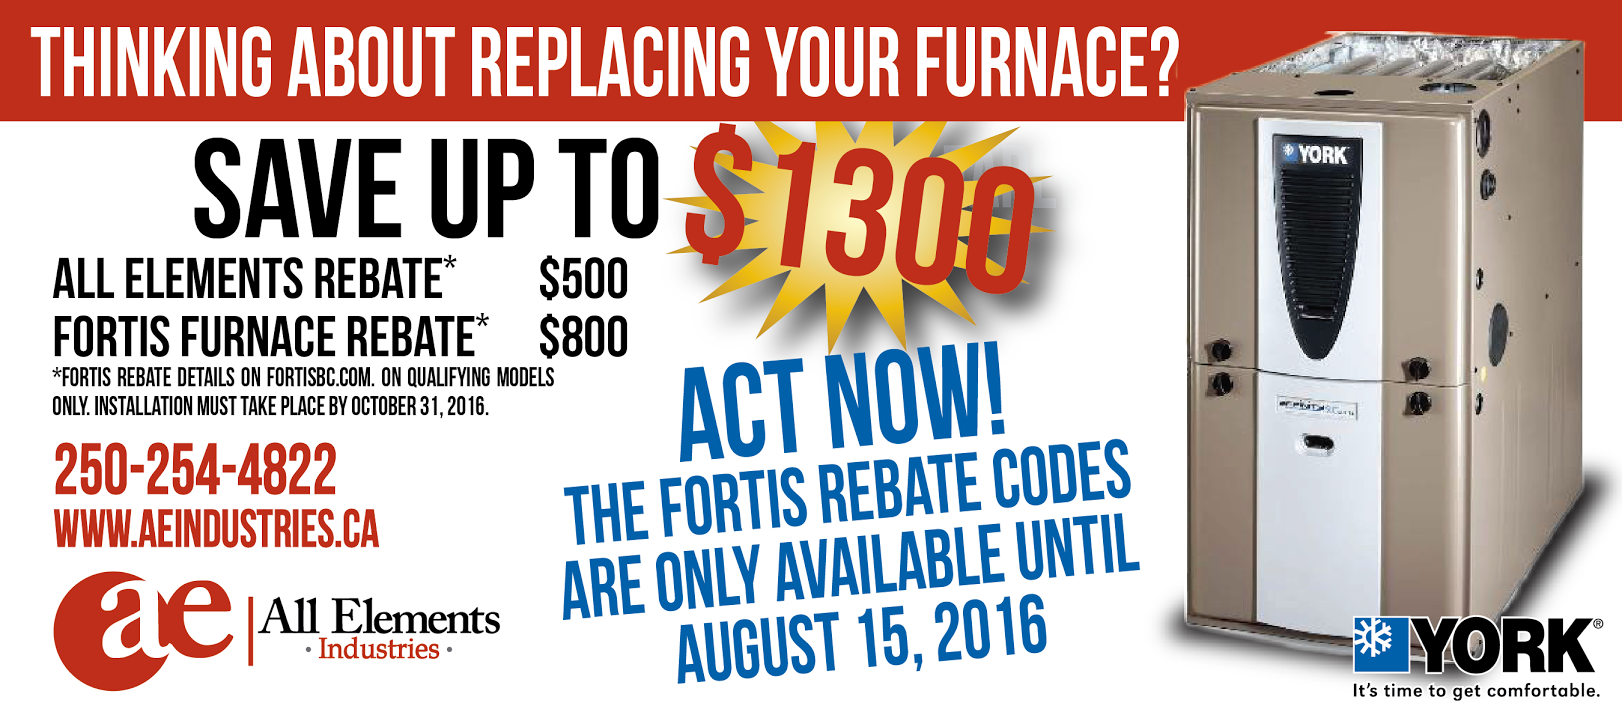 SAVE MONEY WITH THE FORTIS REBATE ON YOUR FURNACE REPLACEMENT